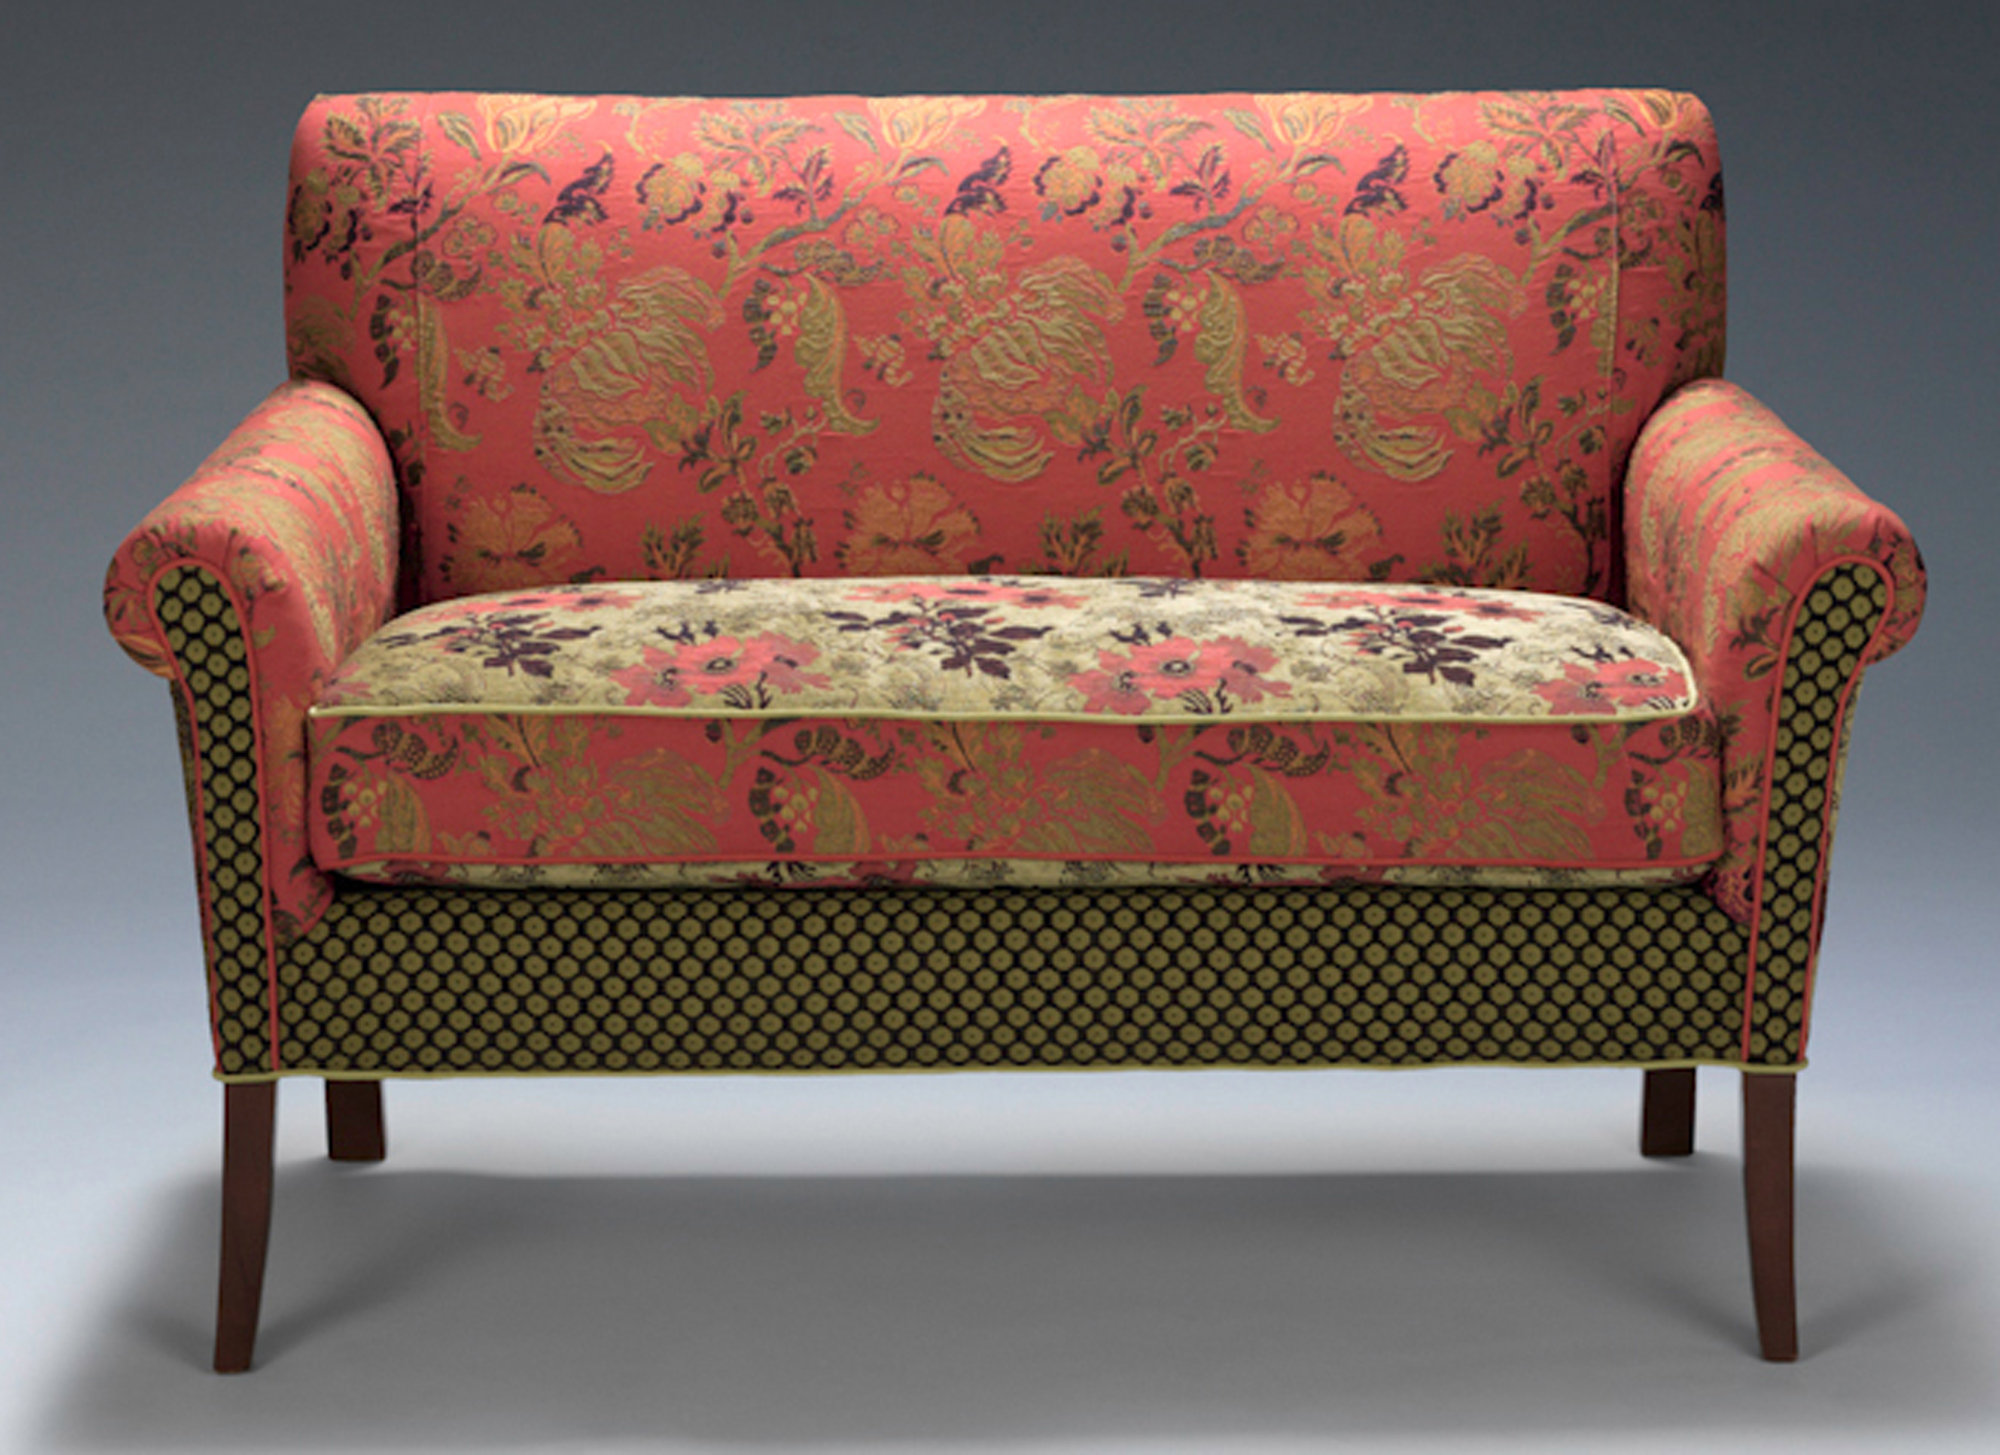 Upholstered sofa salon settee in melody rustic by mary lynn ou0027shea (upholstered sofa) | AUQMMOB